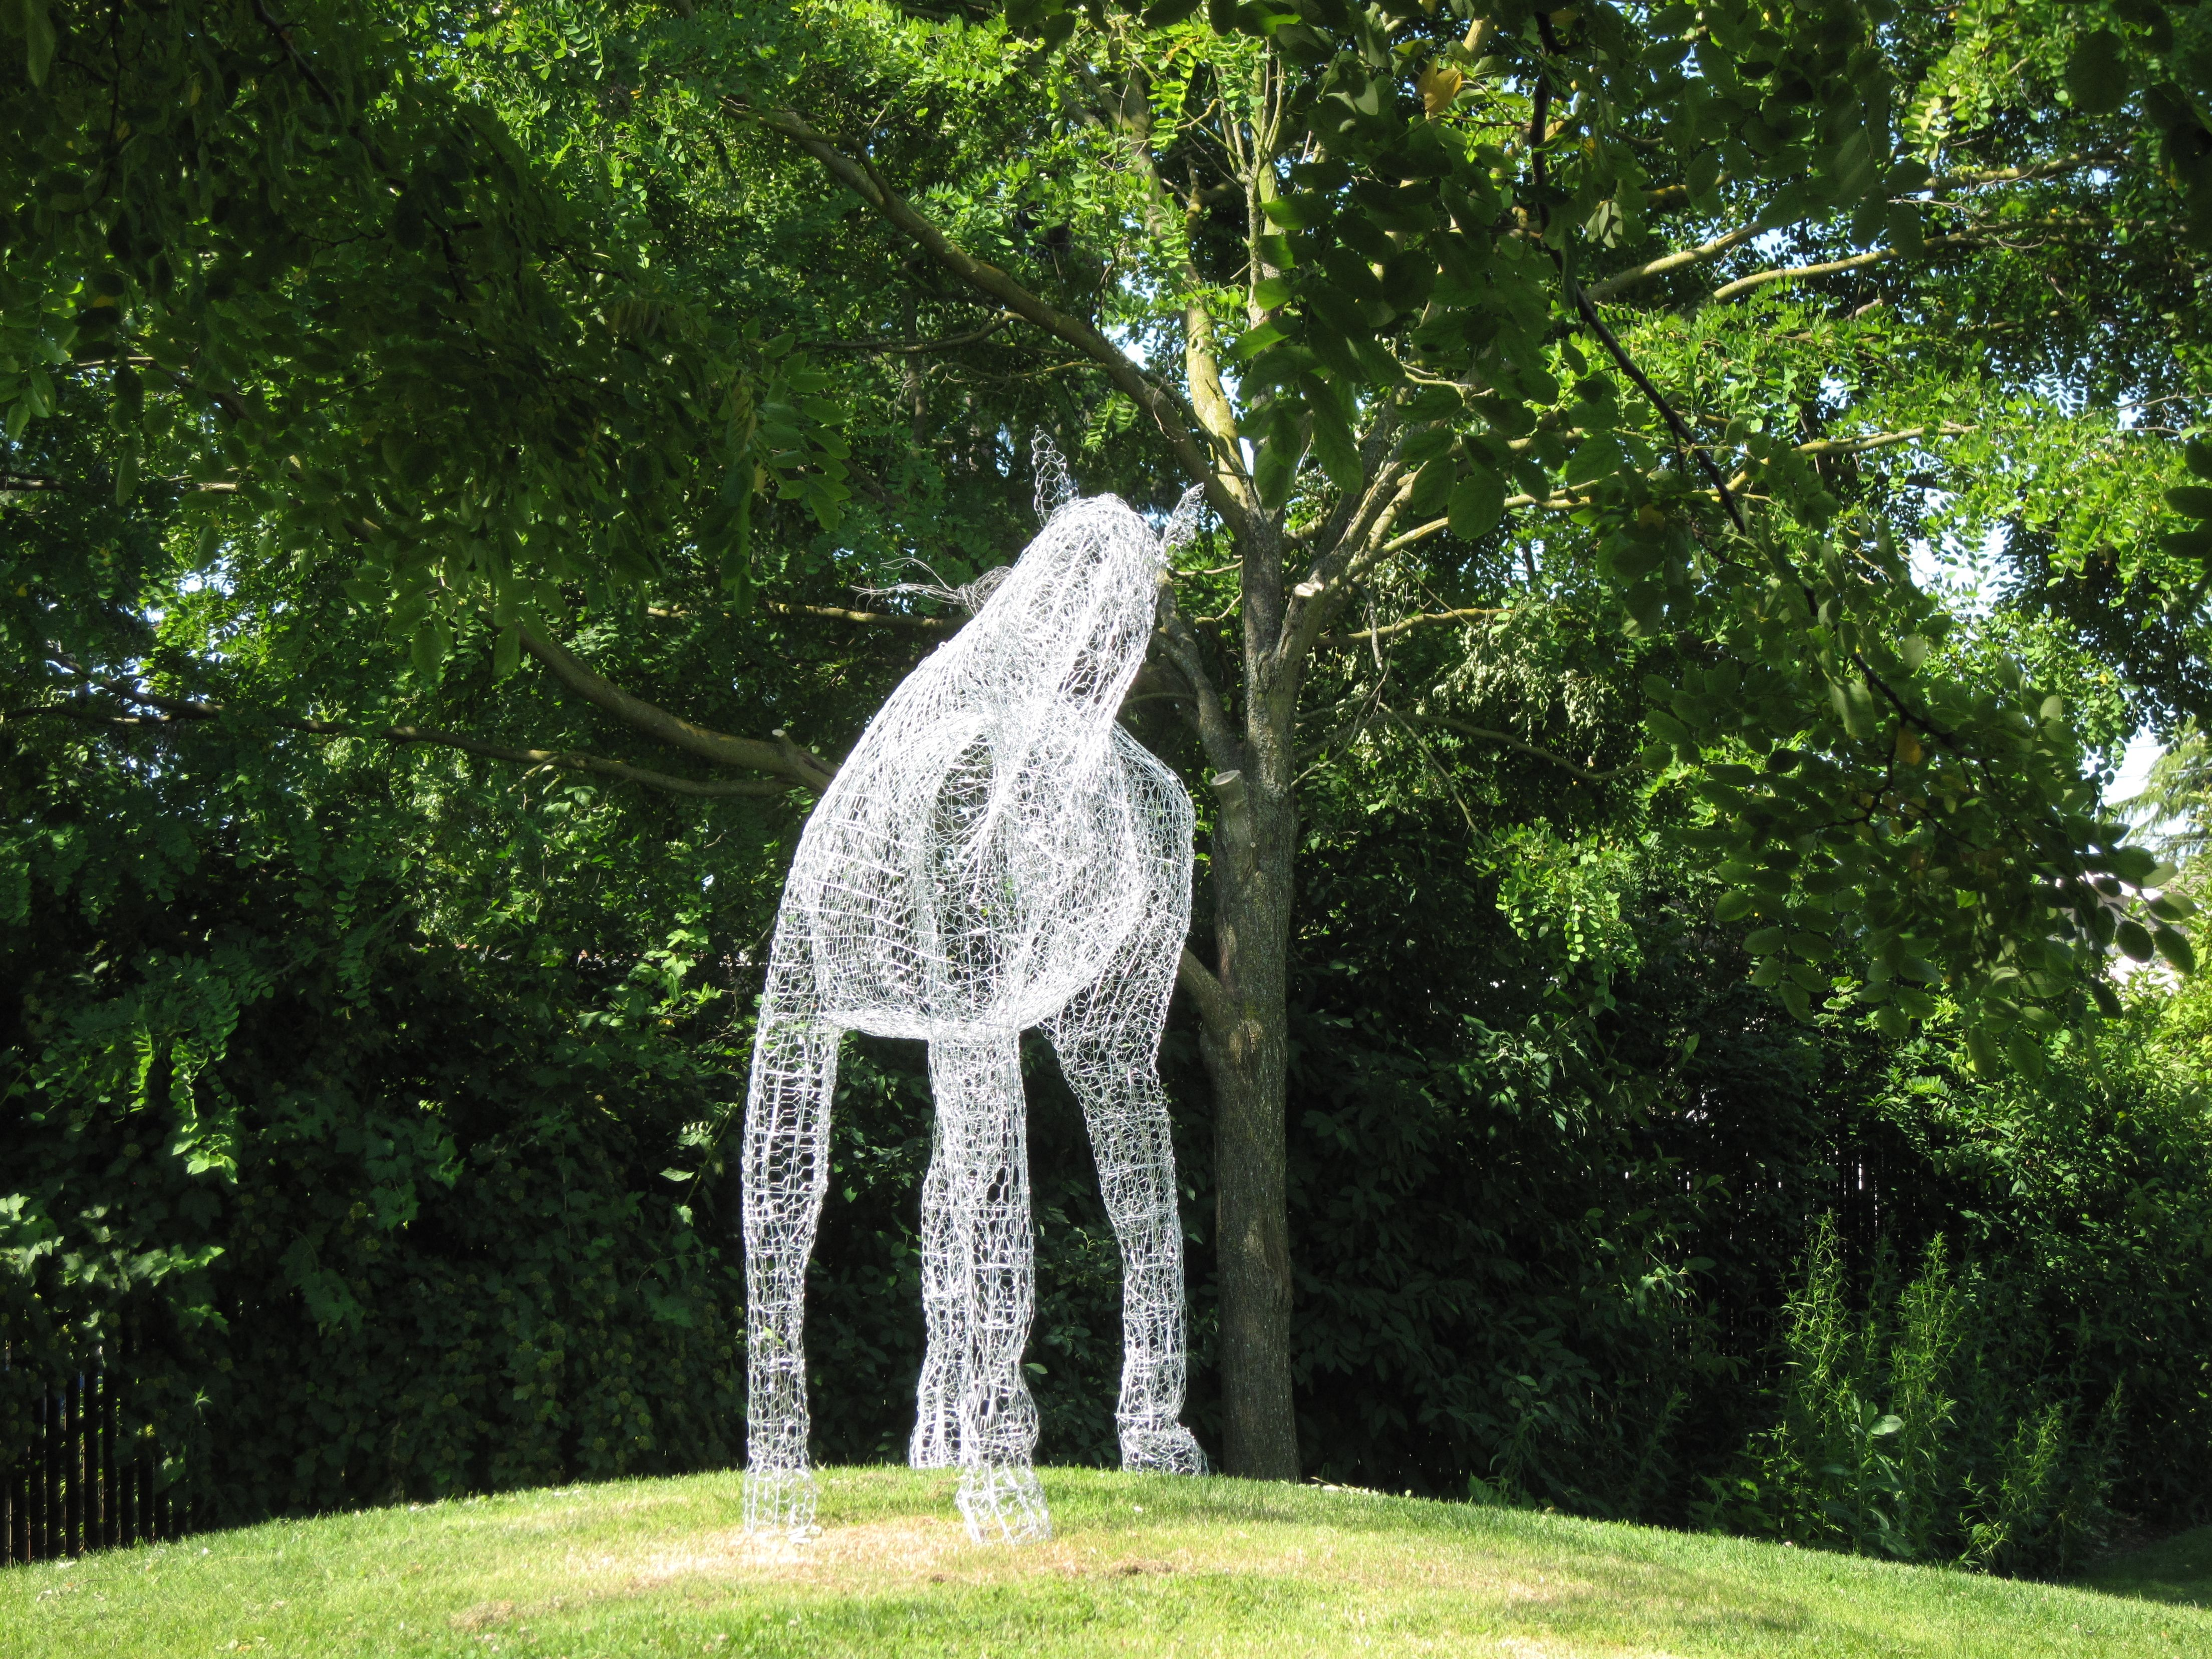 Ghostly life-size horse sculpture made from chicken wire | Garden ...